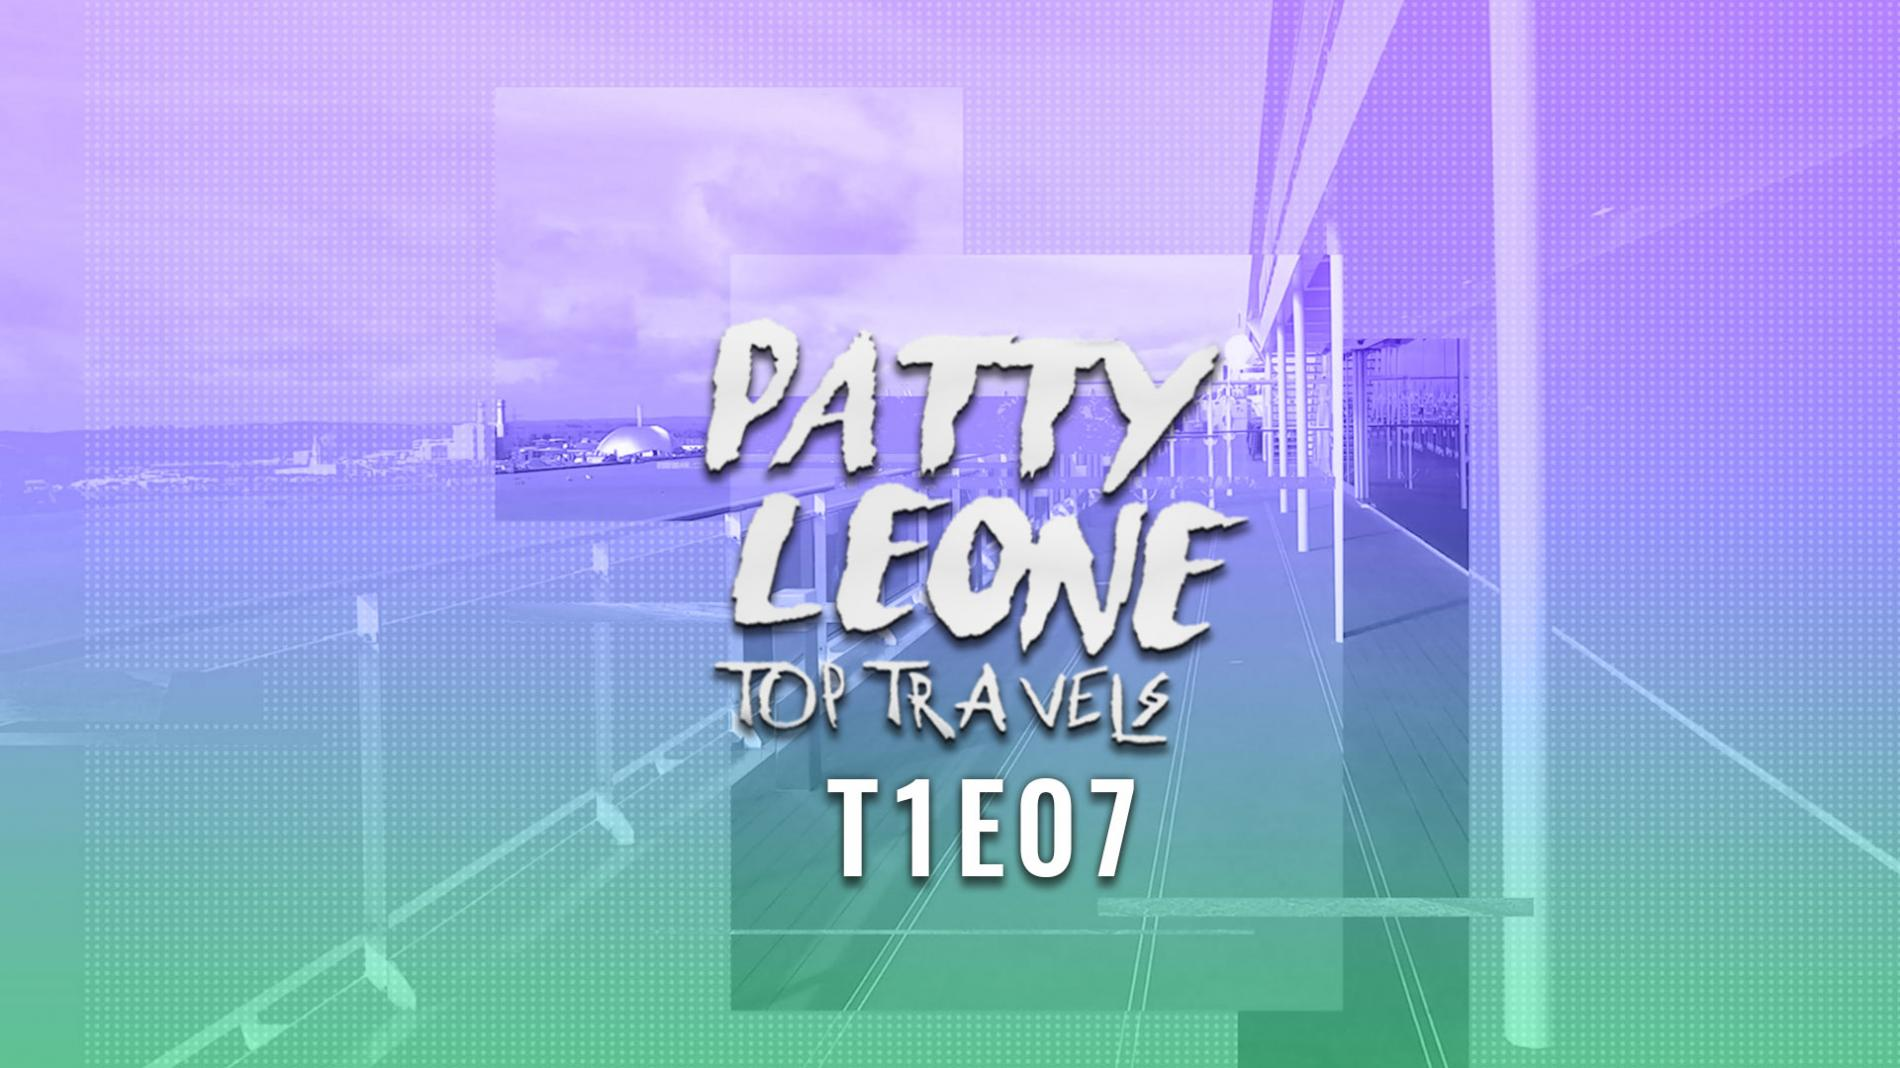 Patty Leone Top Travels - Temporada T01 - Episódio e07